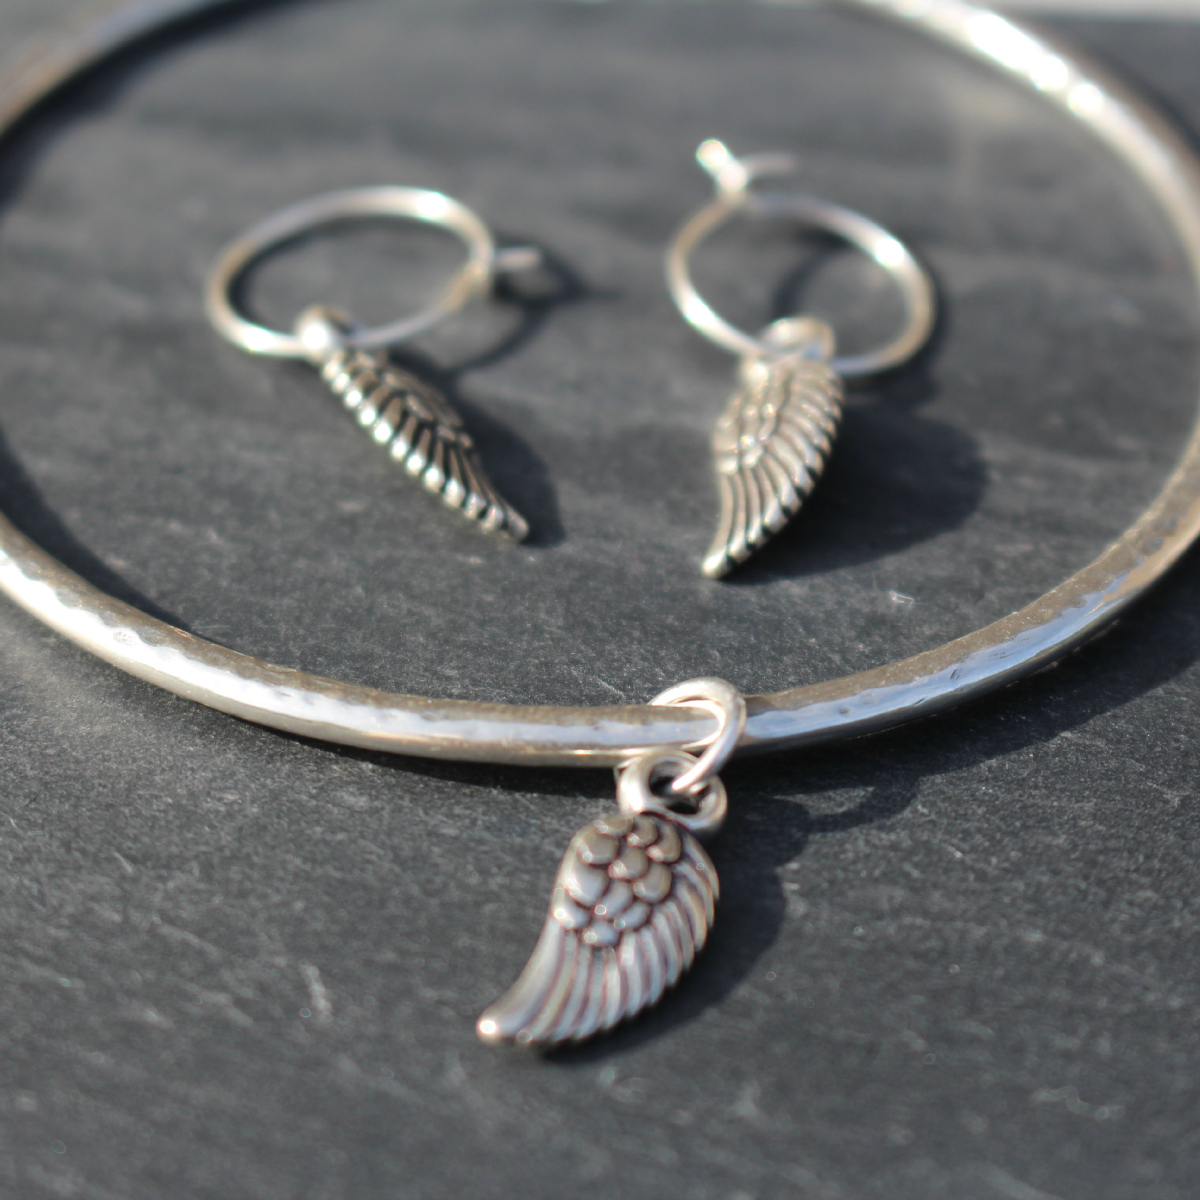 be21a0c25 Danon Silver Bangle With Mini Angel Wing Charm